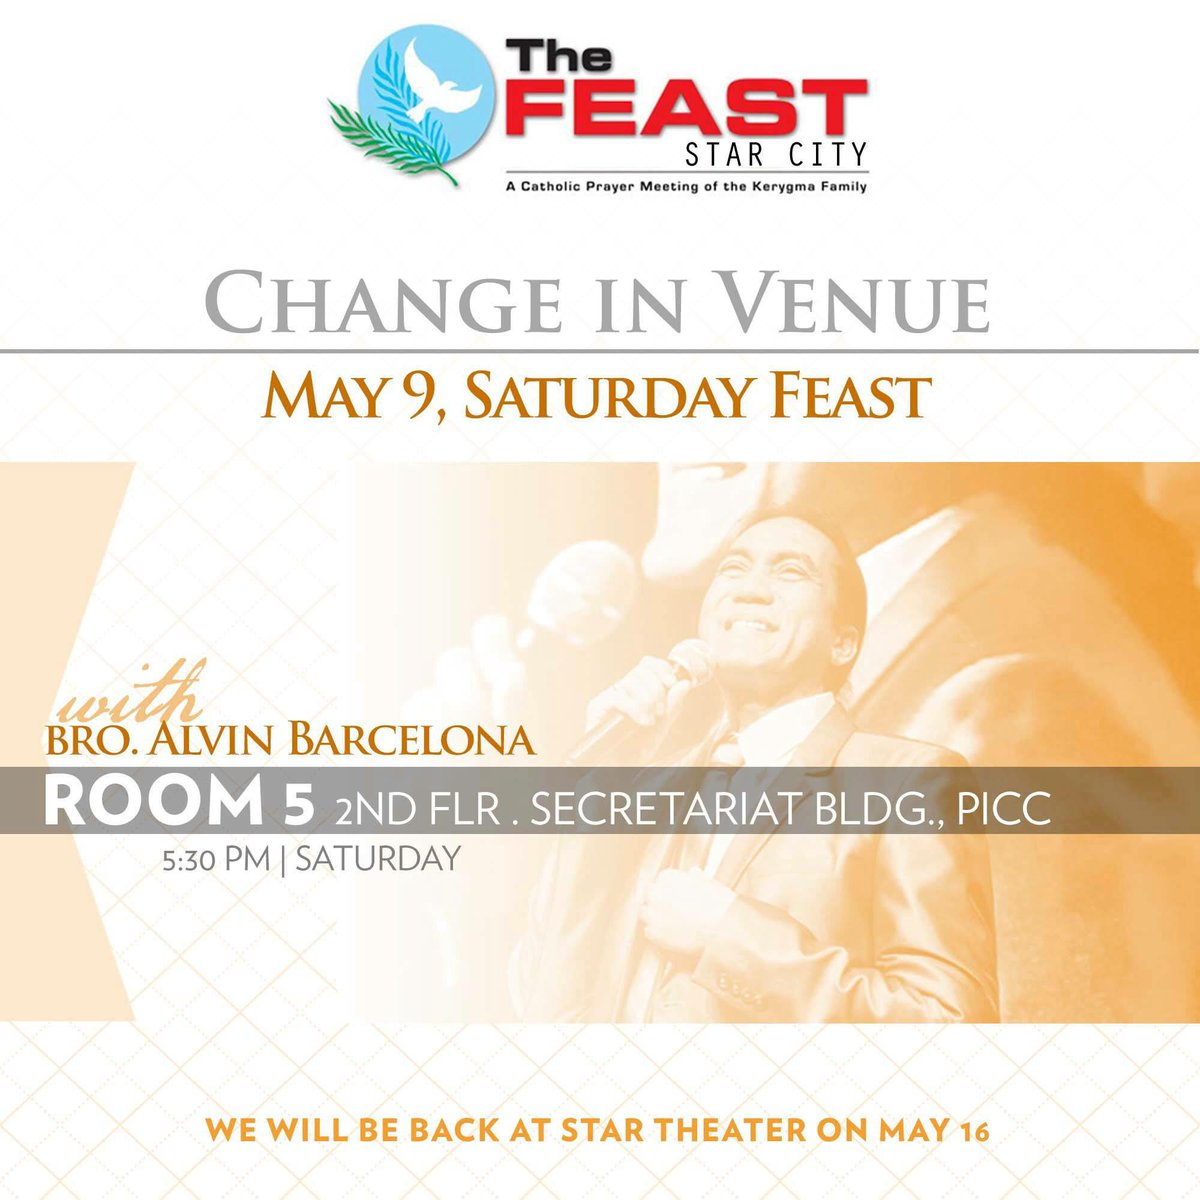 The Feast Bay Area On Twitter The Feast Star City This Saturday